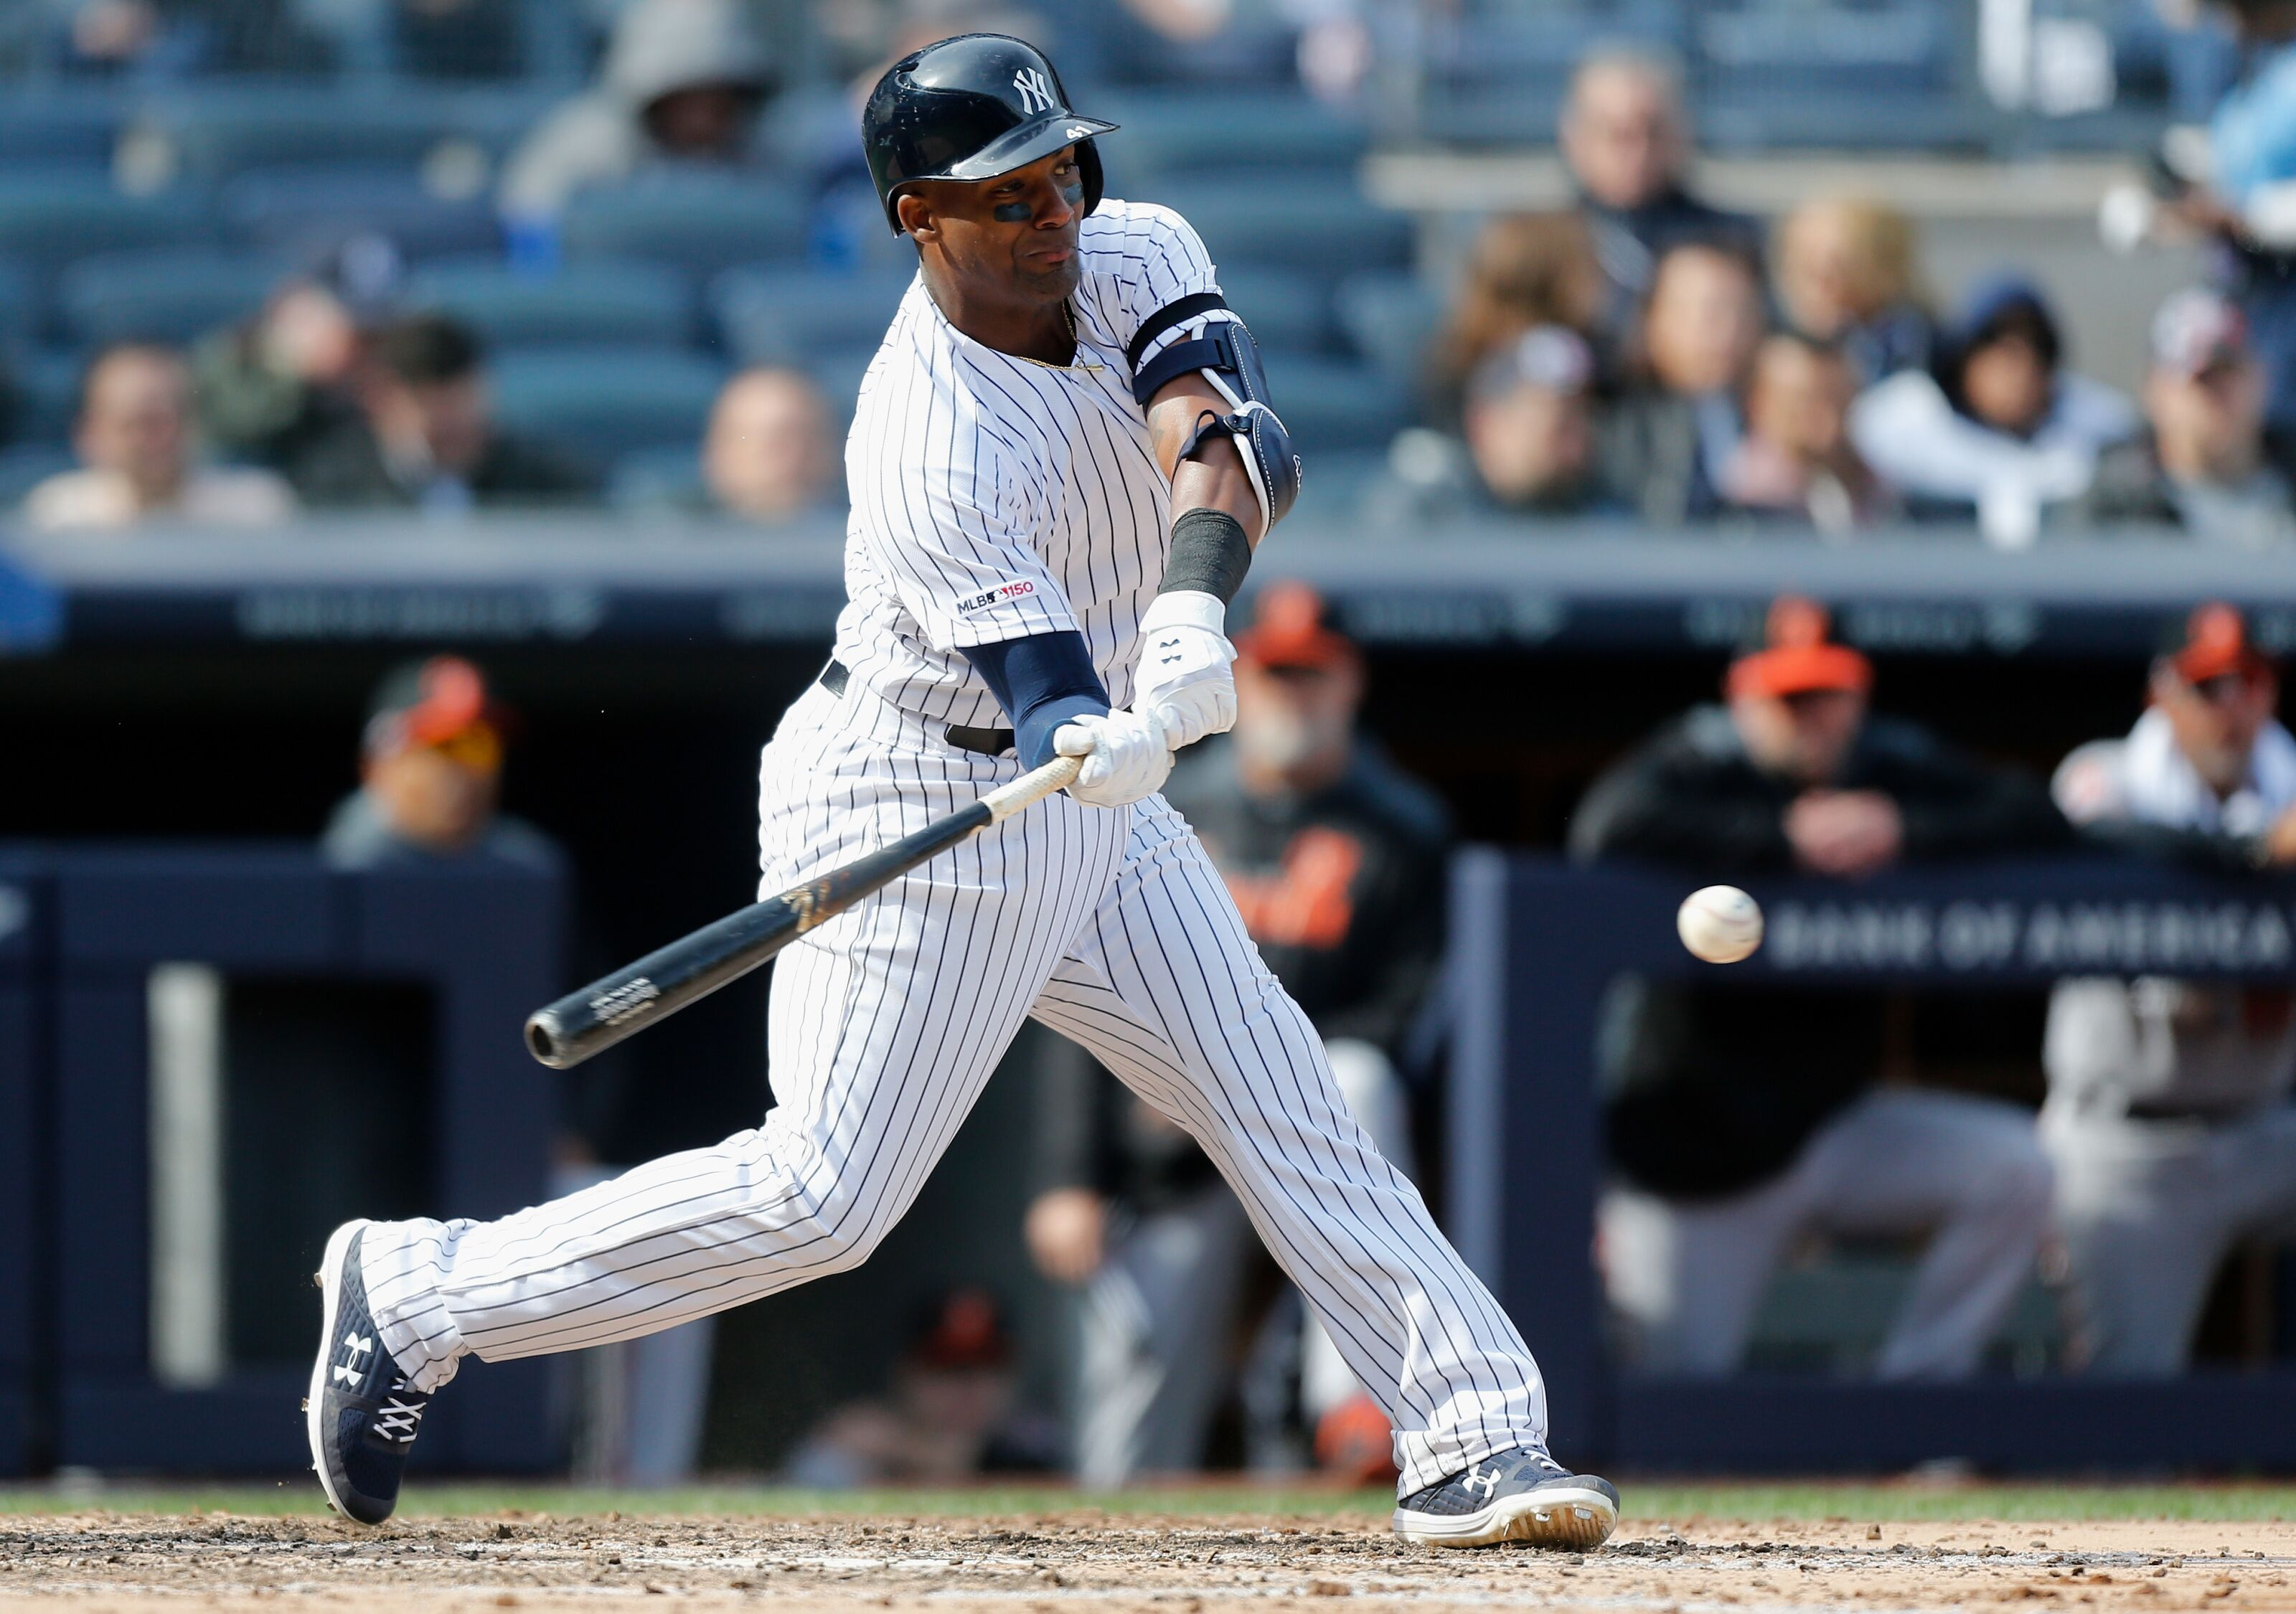 a7fb44c49 New York Yankees  Miguel Andujar is Done for the Season